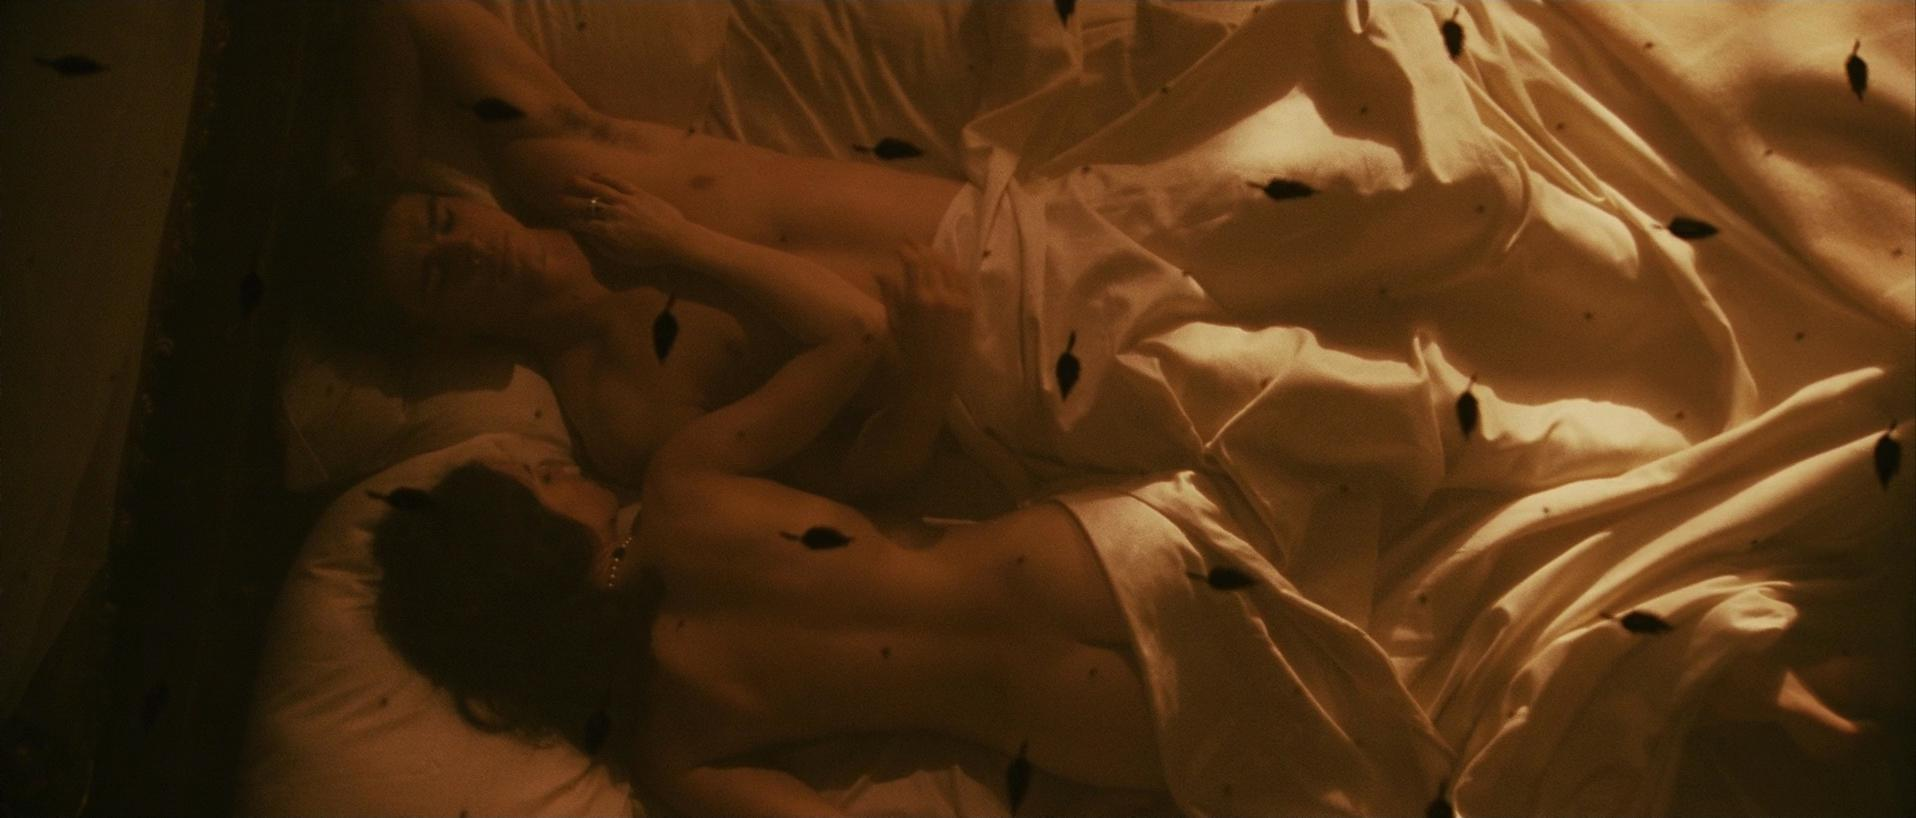 Hilary Swank nude - The Black Dahlia (2006)